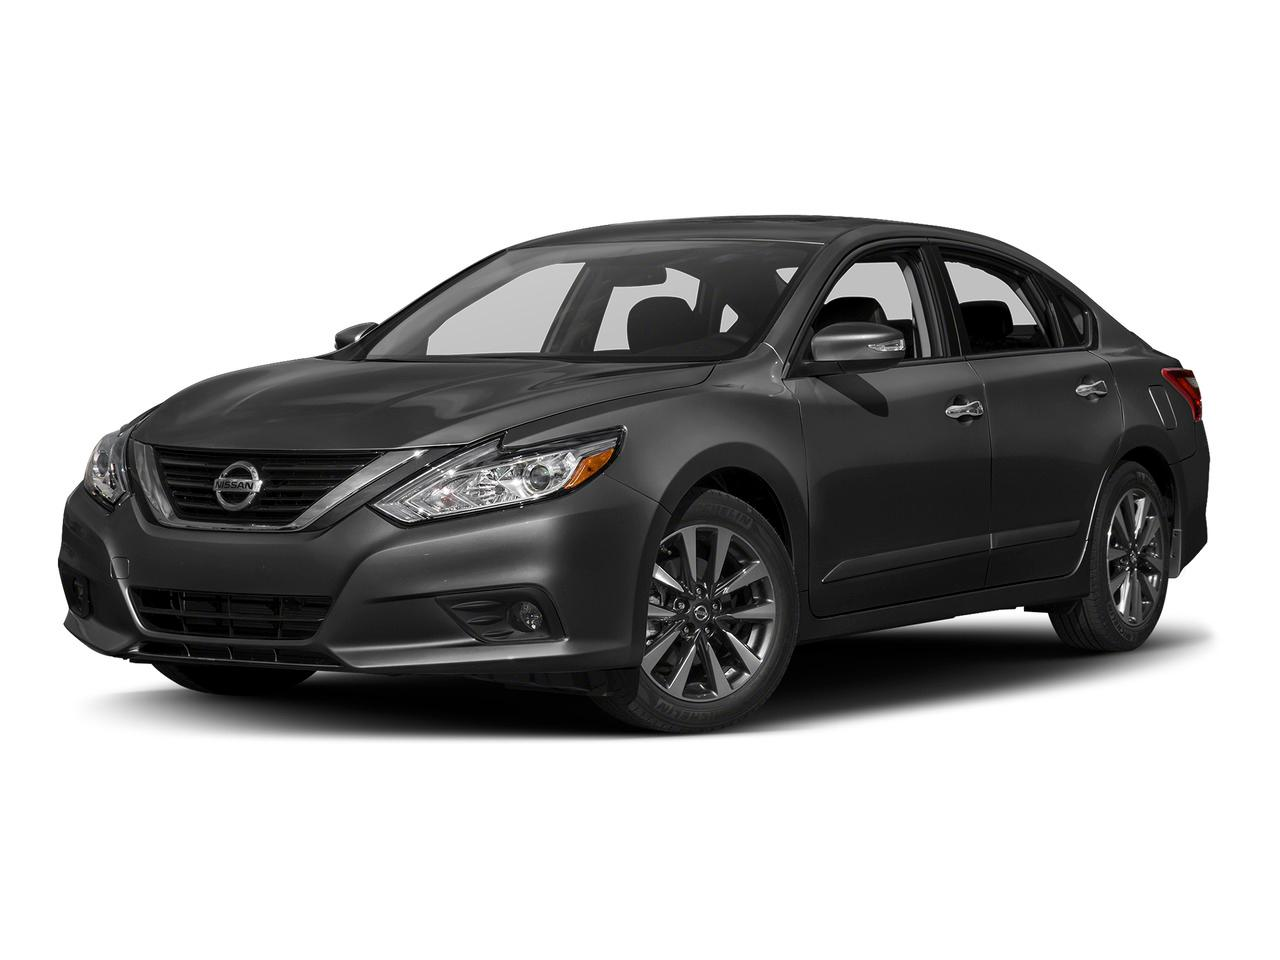 2017 Nissan Altima Vehicle Photo in Owensboro, KY 42303